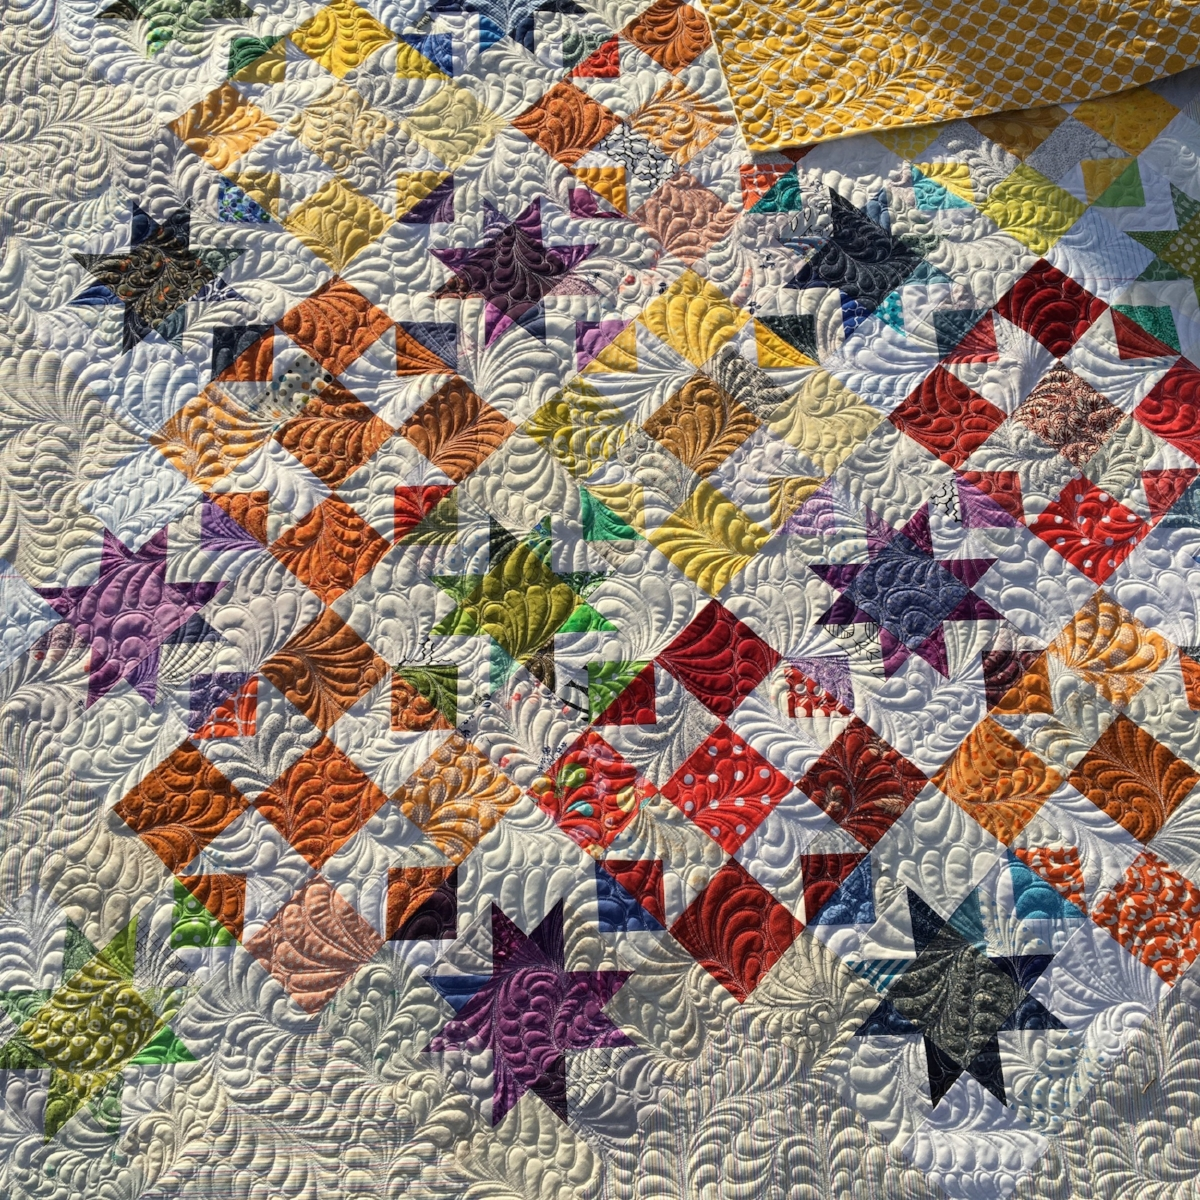 Quilted with allover feathers.